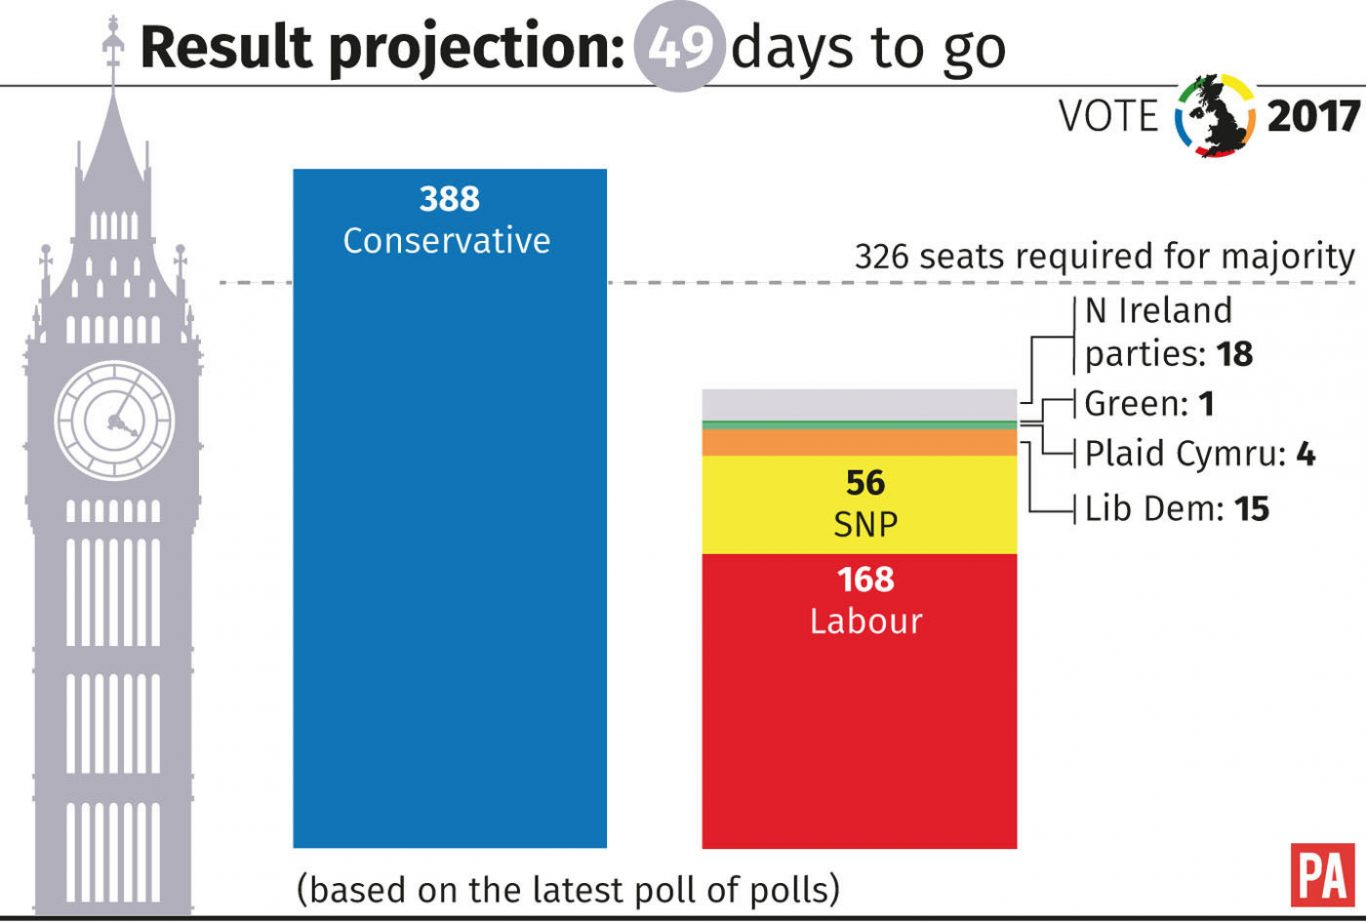 Election 2017 result projection with 49 days to go graphic